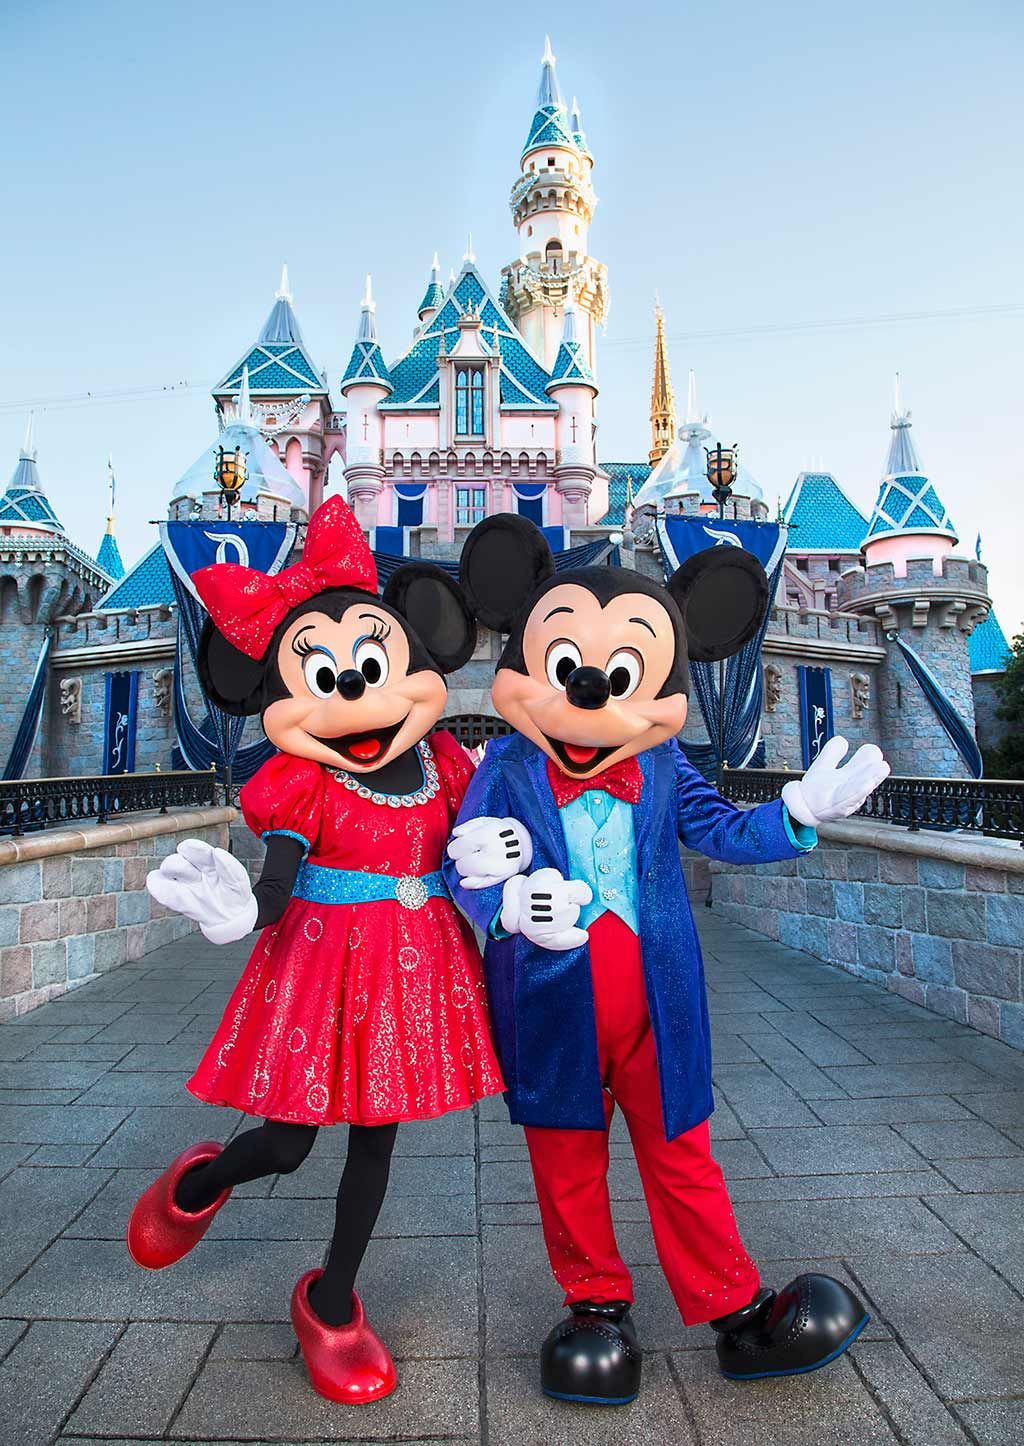 Mickey Mouse and Minnie Mouse in front of the castle